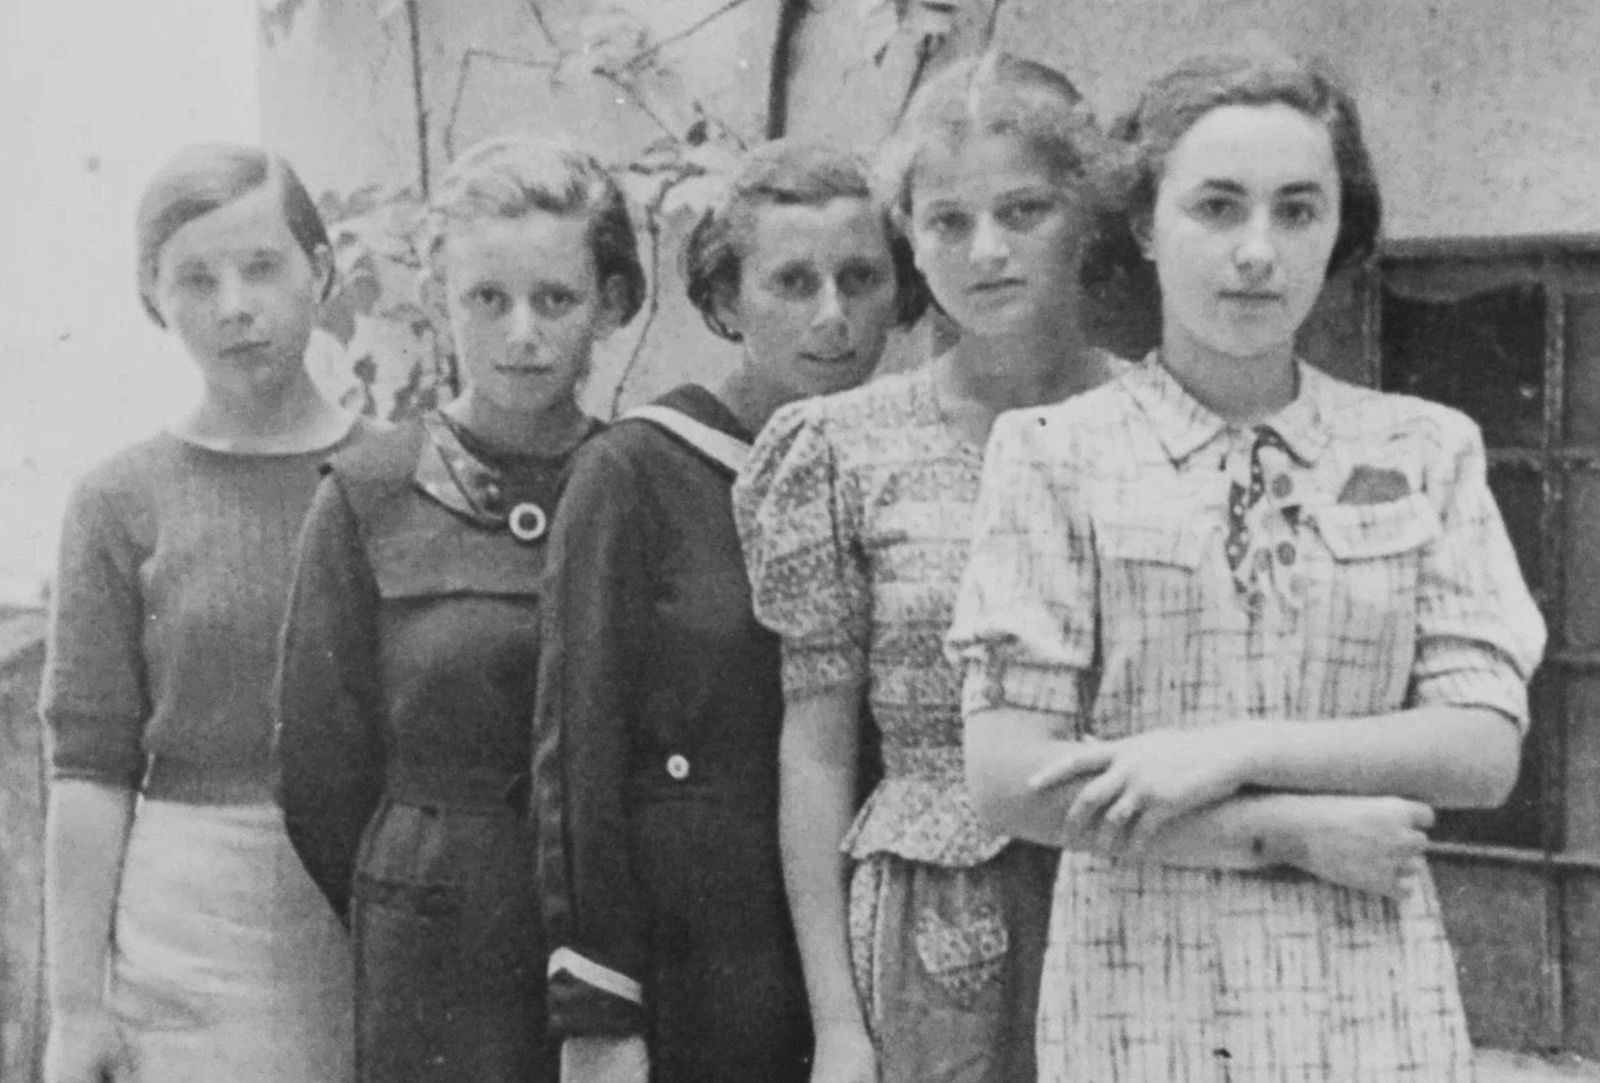 The first official transport to Auschwitz brought 999 young women. This is their story.